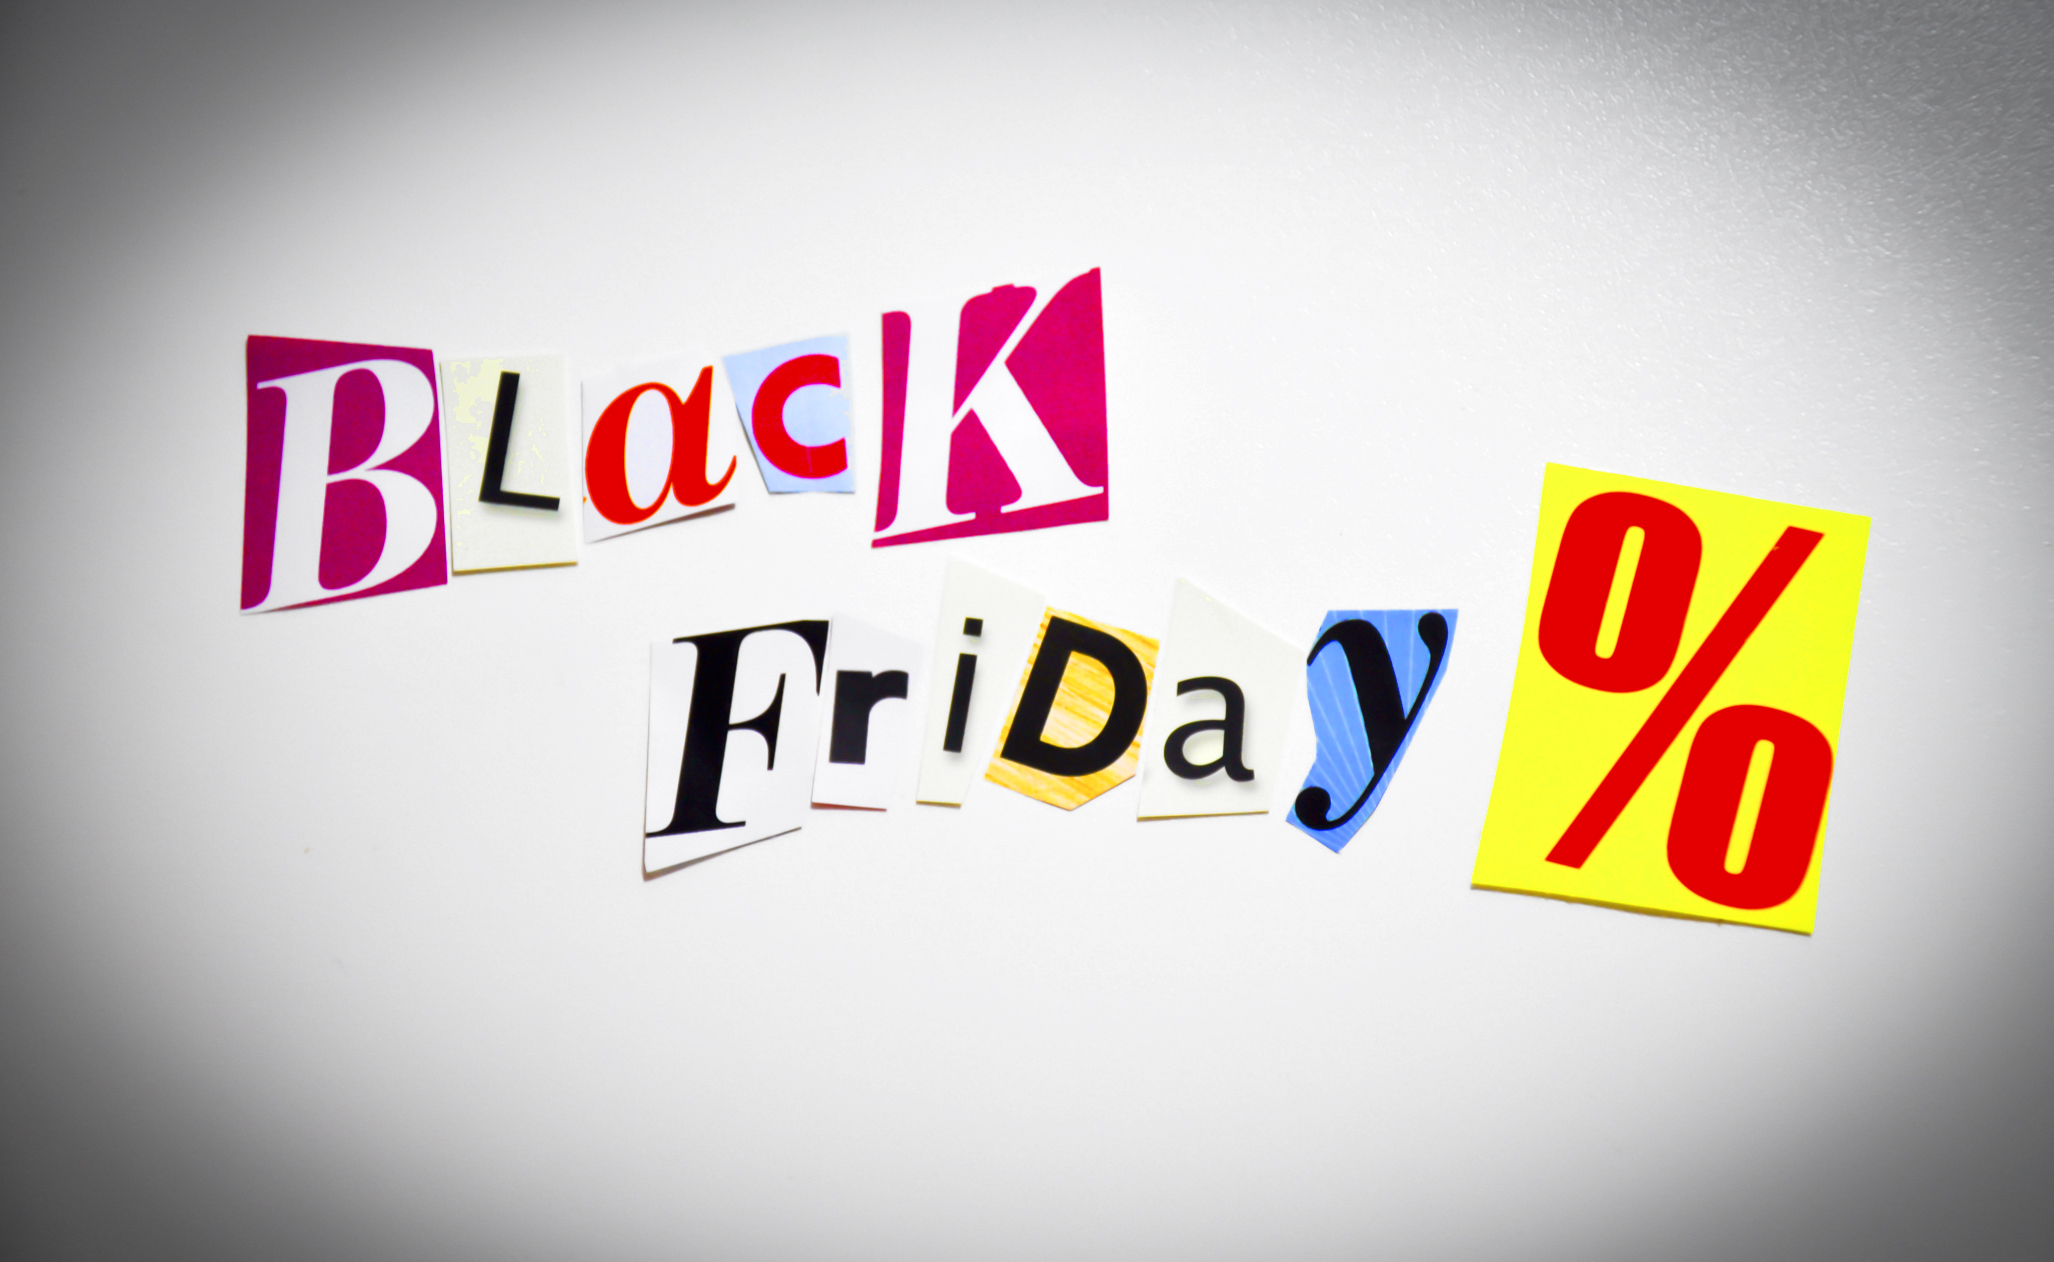 Black Friday Sale Deutschland Black Friday Germany Amazon Workers Stage Black Friday